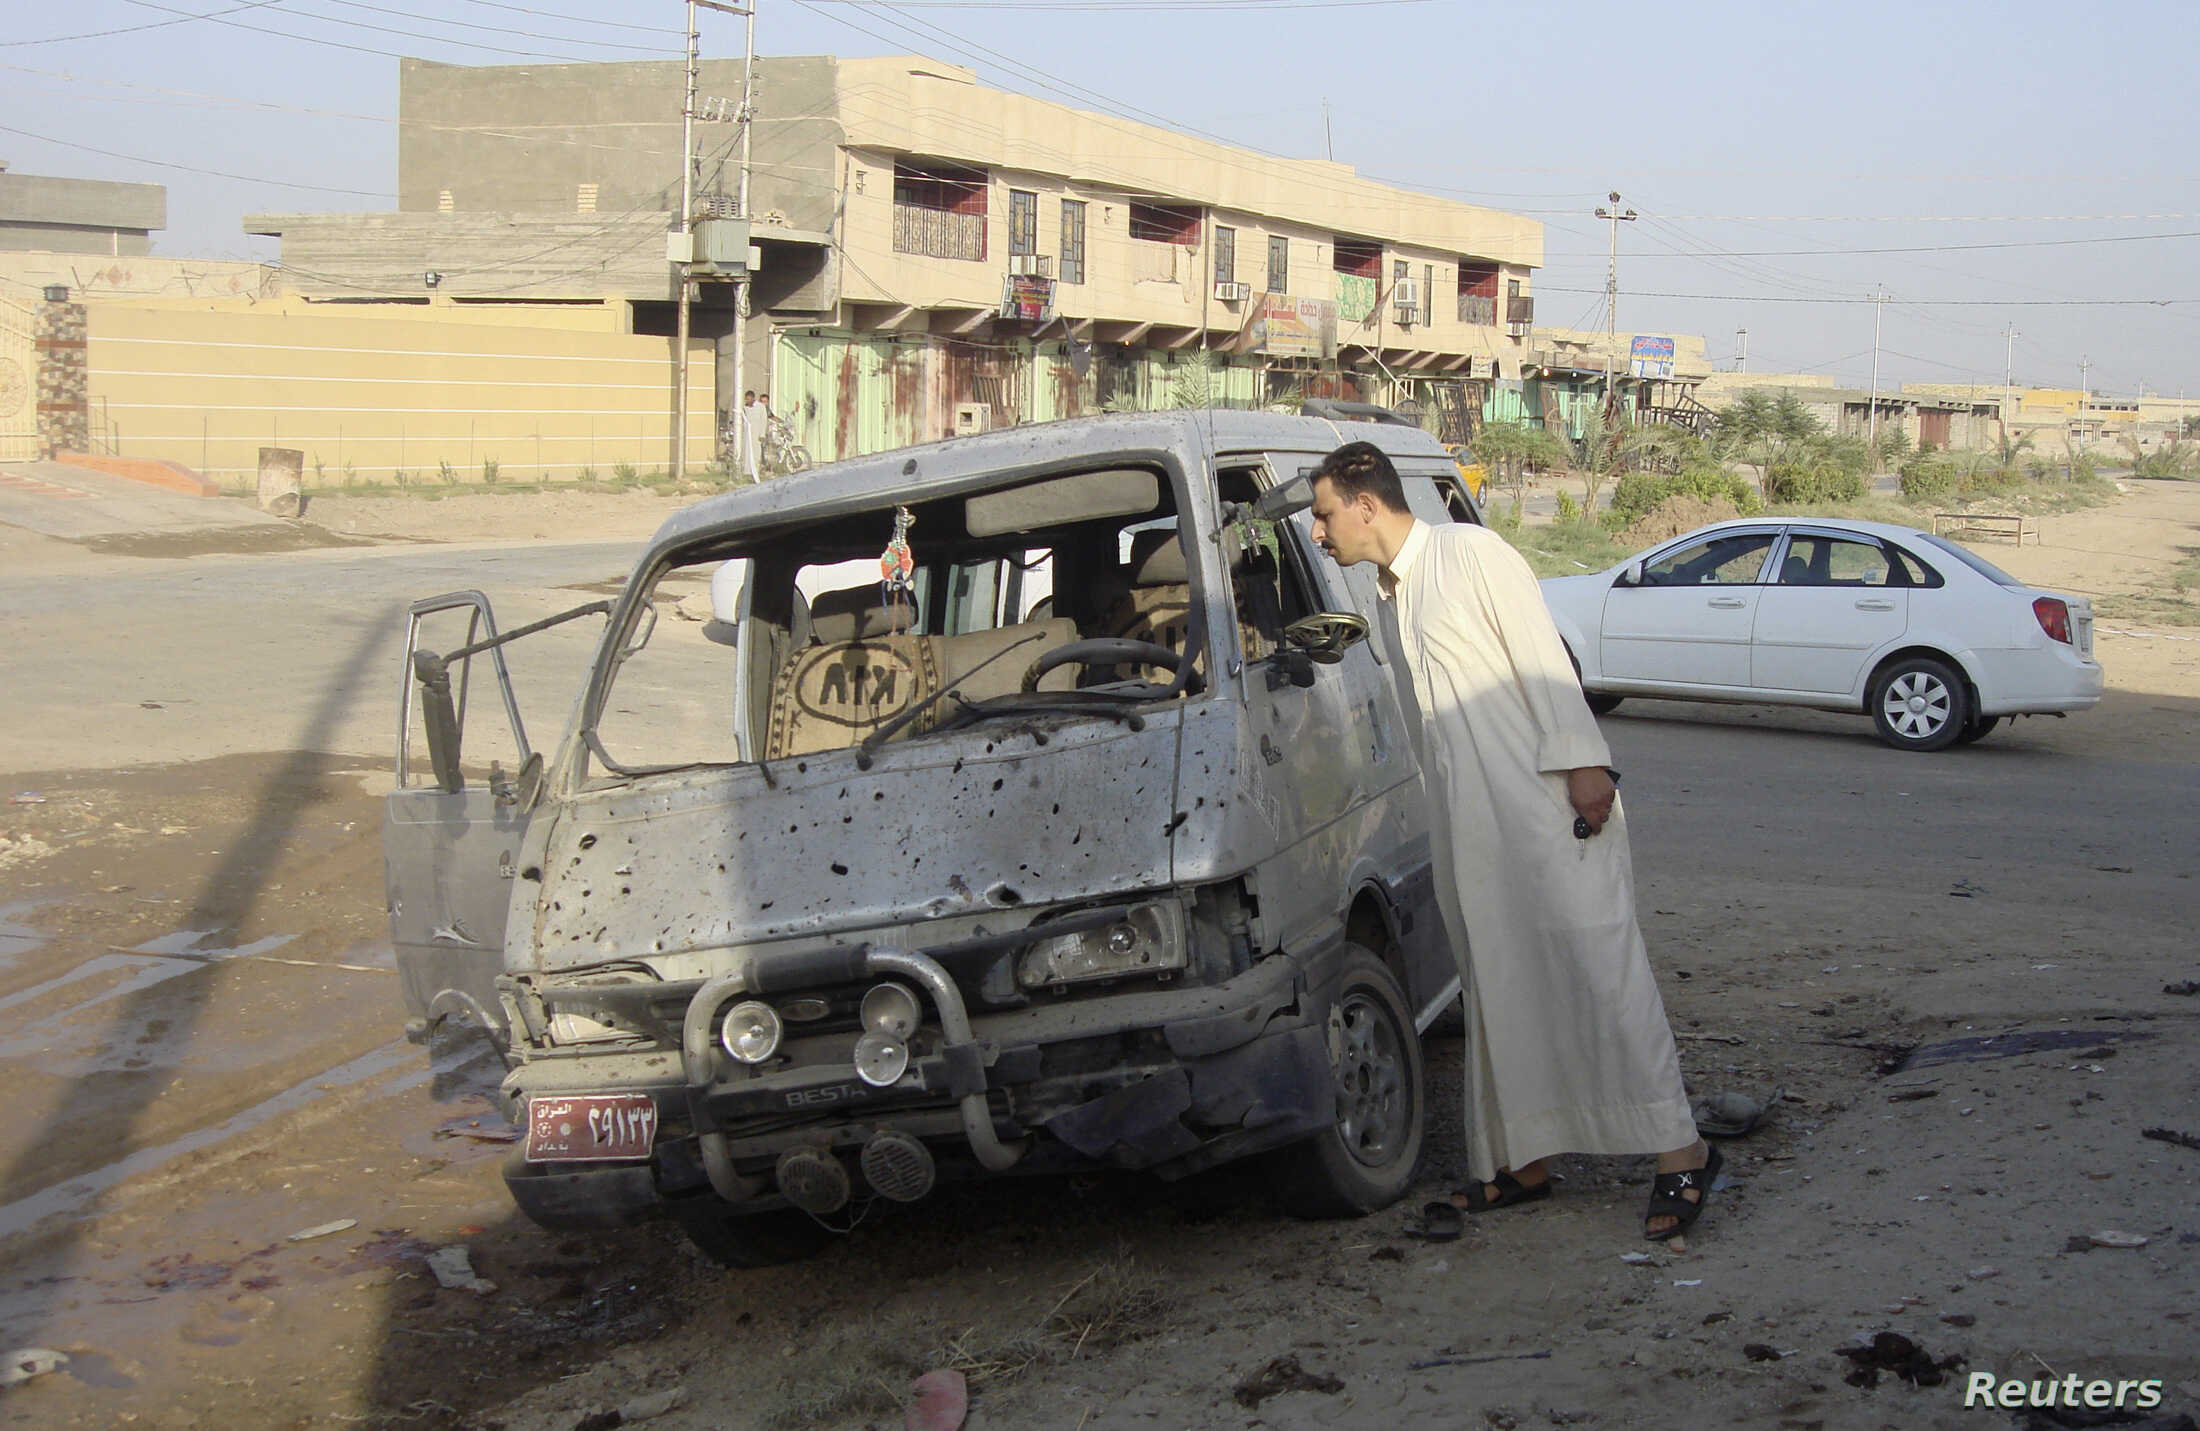 A resident inspects a damaged vehicle a day after a car bomb attack in Dujail, 50 kilometers north of Baghdad, Aug. 23, 2013.